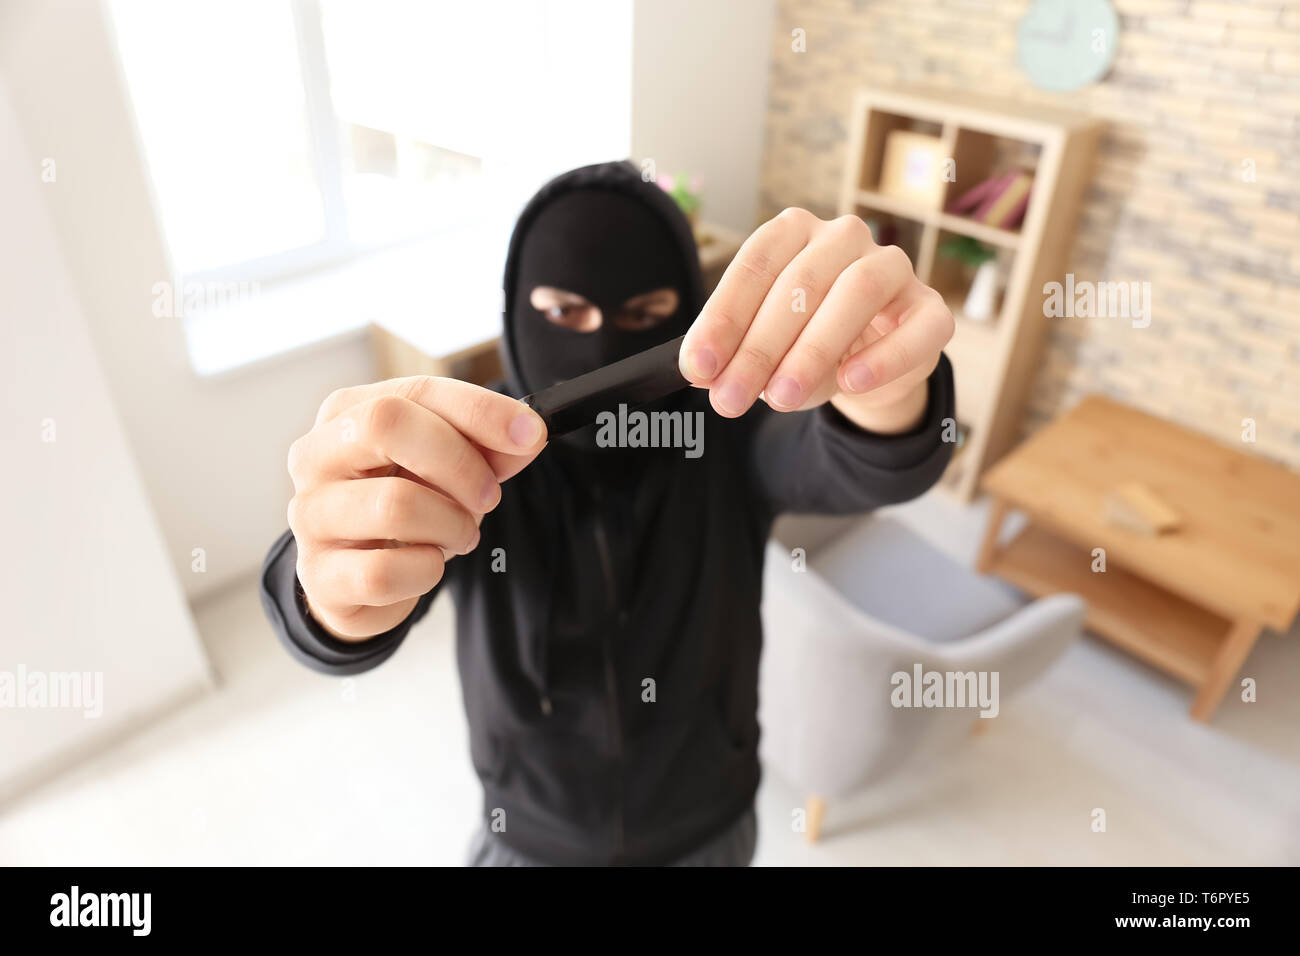 Thief putting sticky tape onto camera of alarm system, indoors - Stock Image